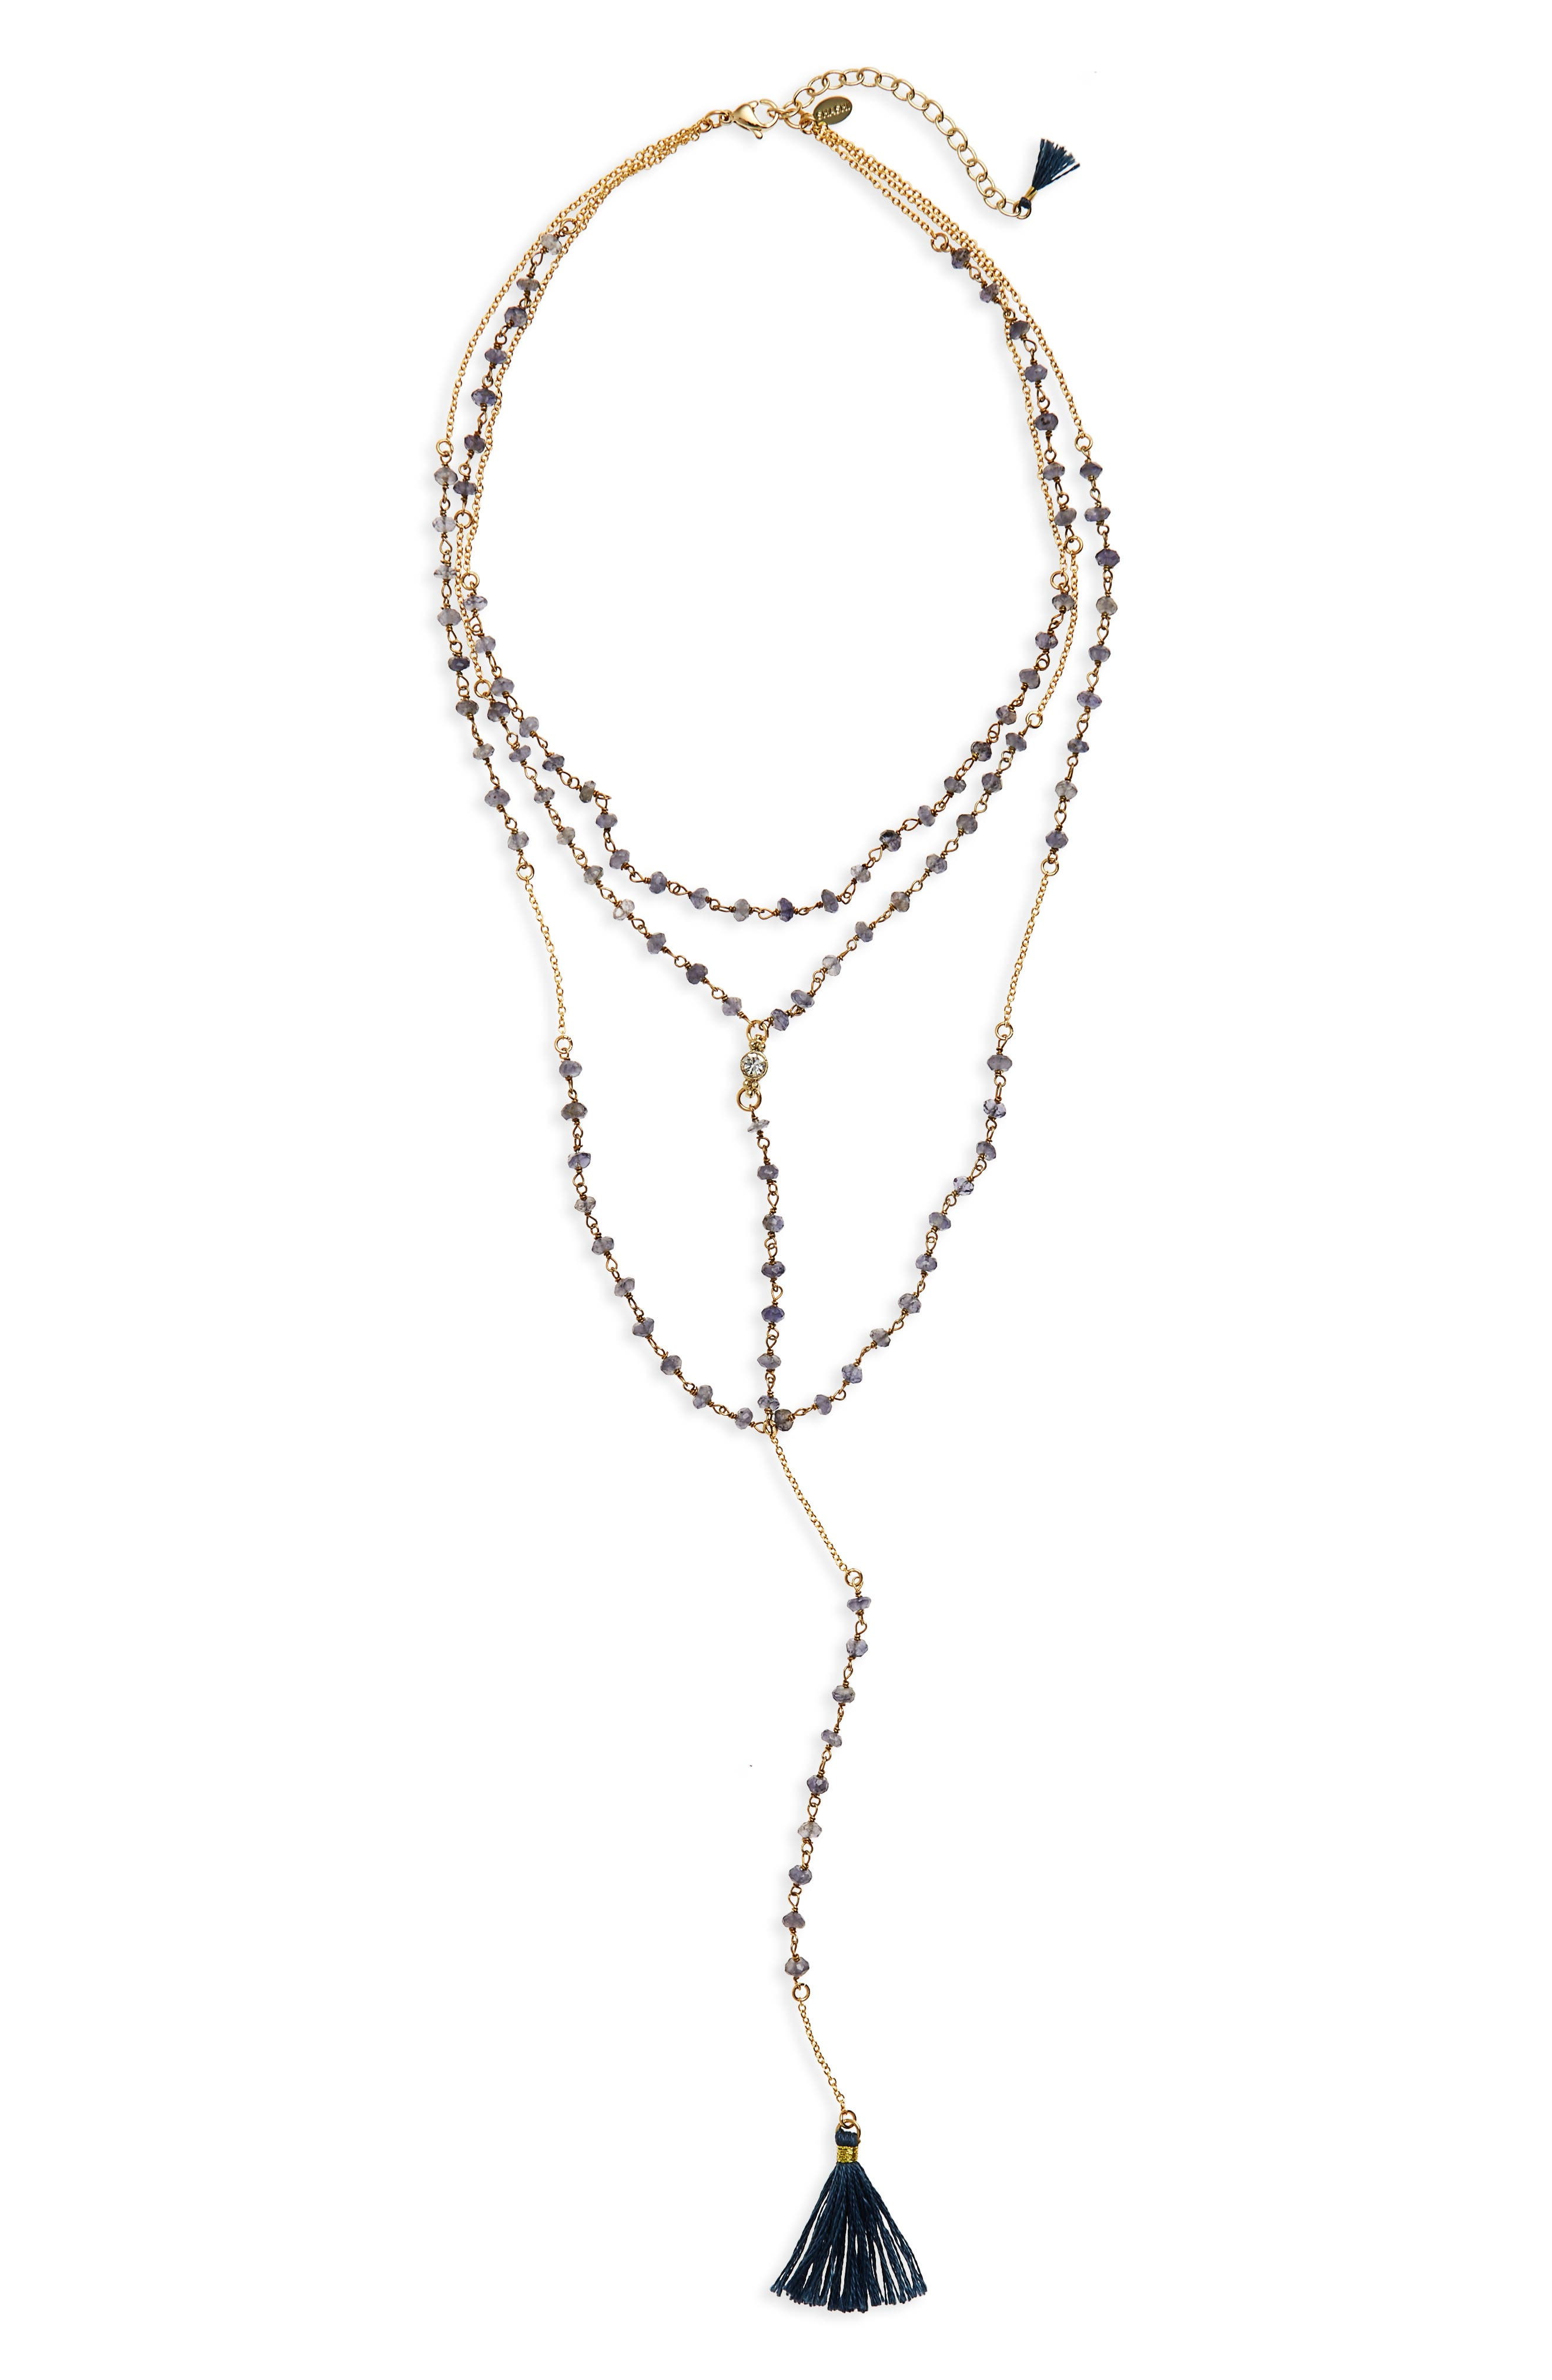 Enne Layered Lariat Necklace,                             Main thumbnail 1, color,                             710